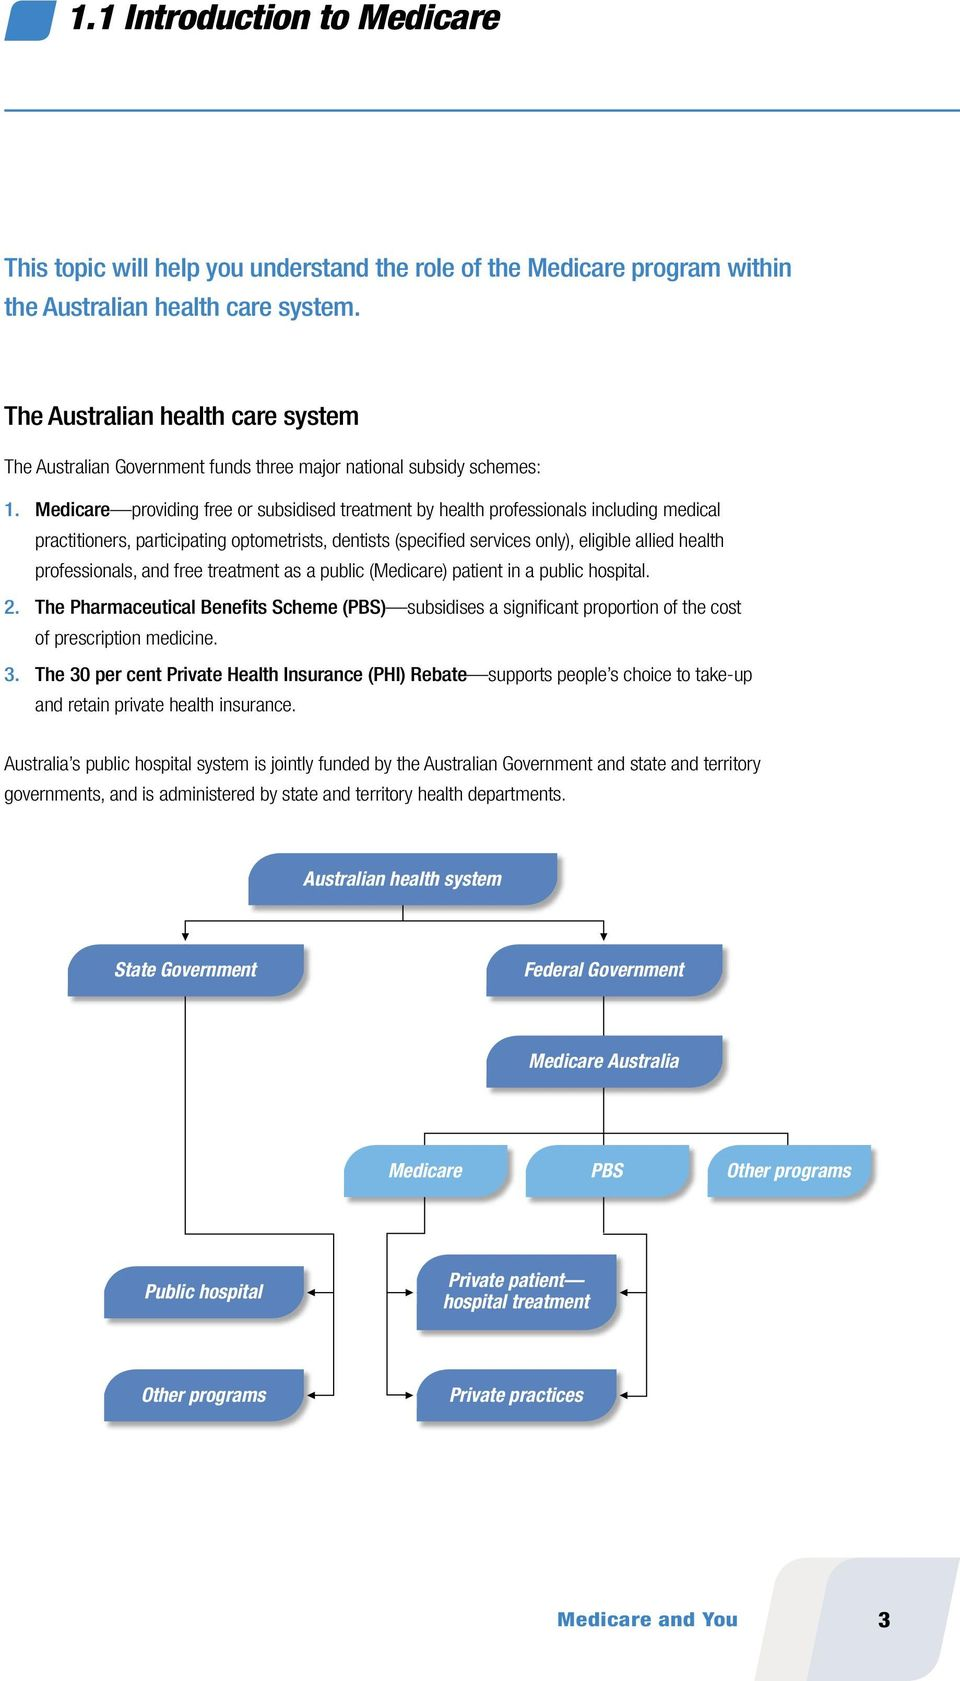 Medicare providing free or subsidised treatment by health professionals including medical practitioners, participating optometrists, dentists (specified services only), eligible allied health